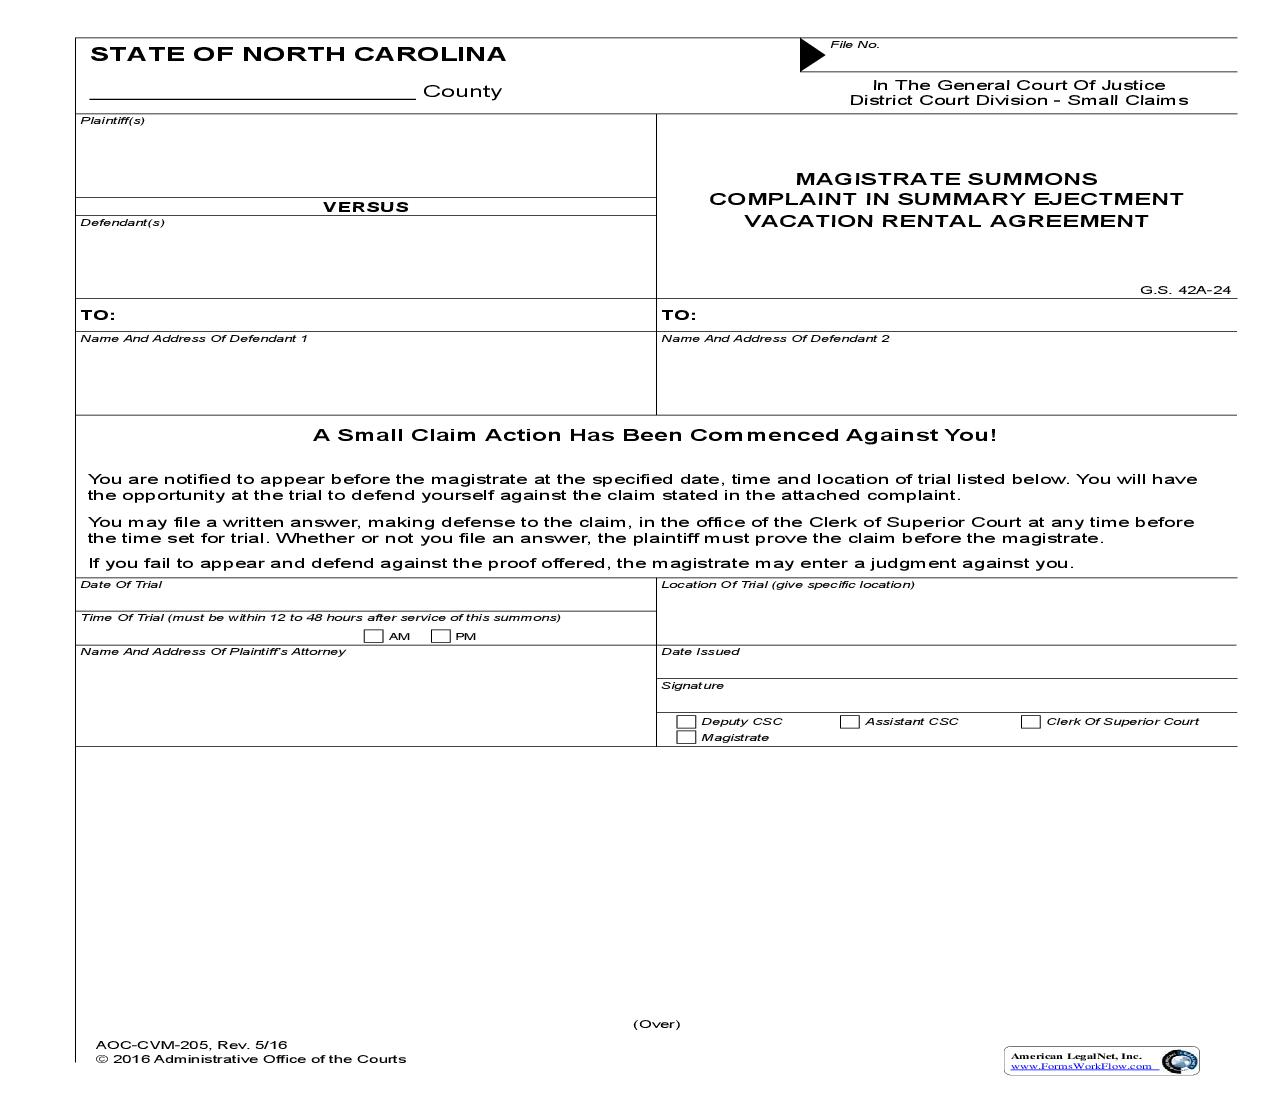 Magistrate Summons Complaint In Summary Ejectment Vacation Rental Agreement {CVM-205} | Pdf Fpdf Doc Docx | North Carolina